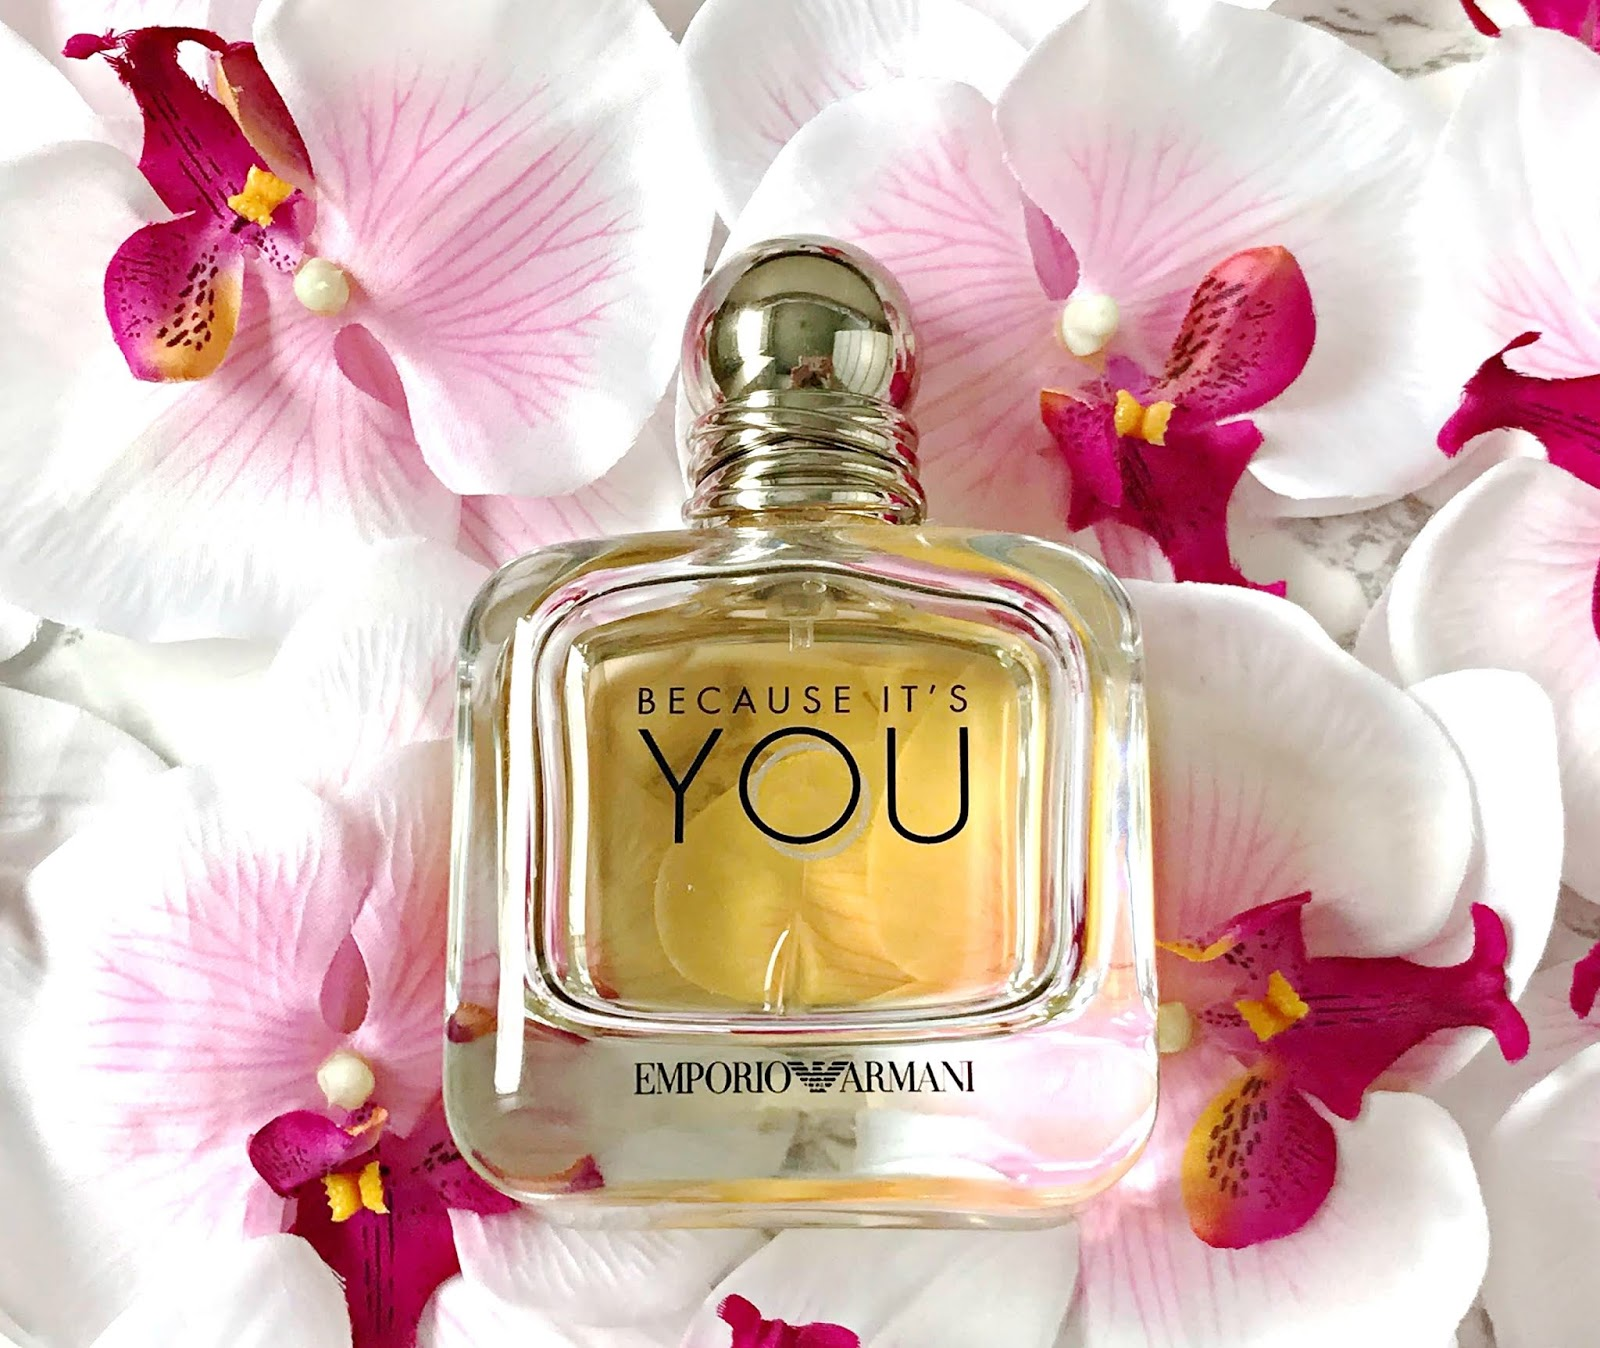 Emporio Armani Because It's You Review and discount